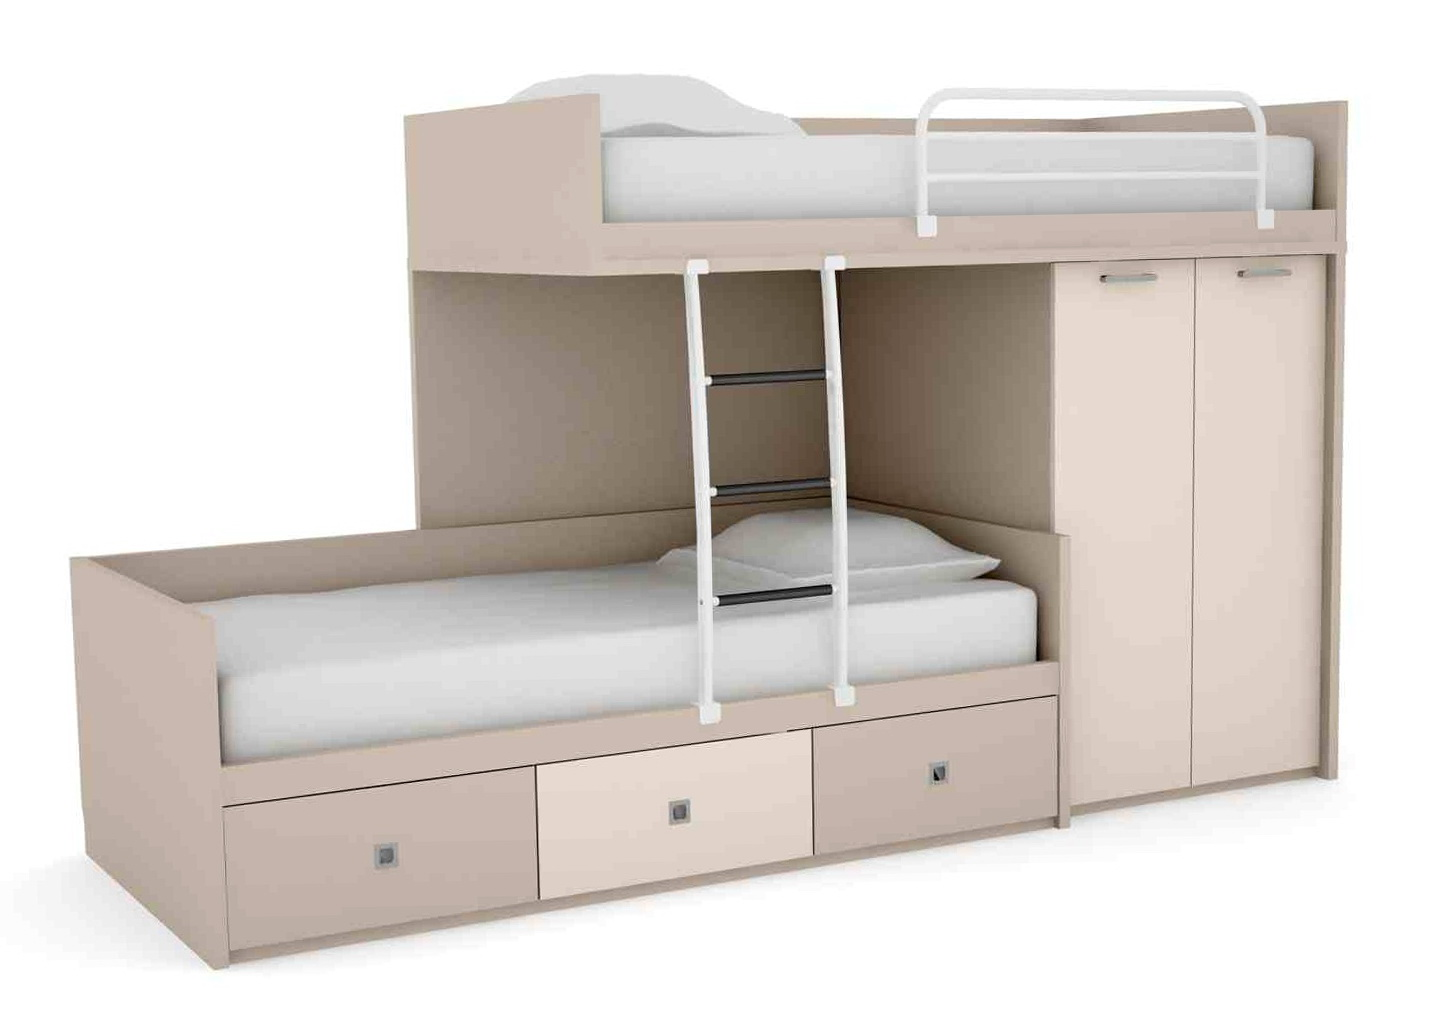 Bunk Beds With Storage Space